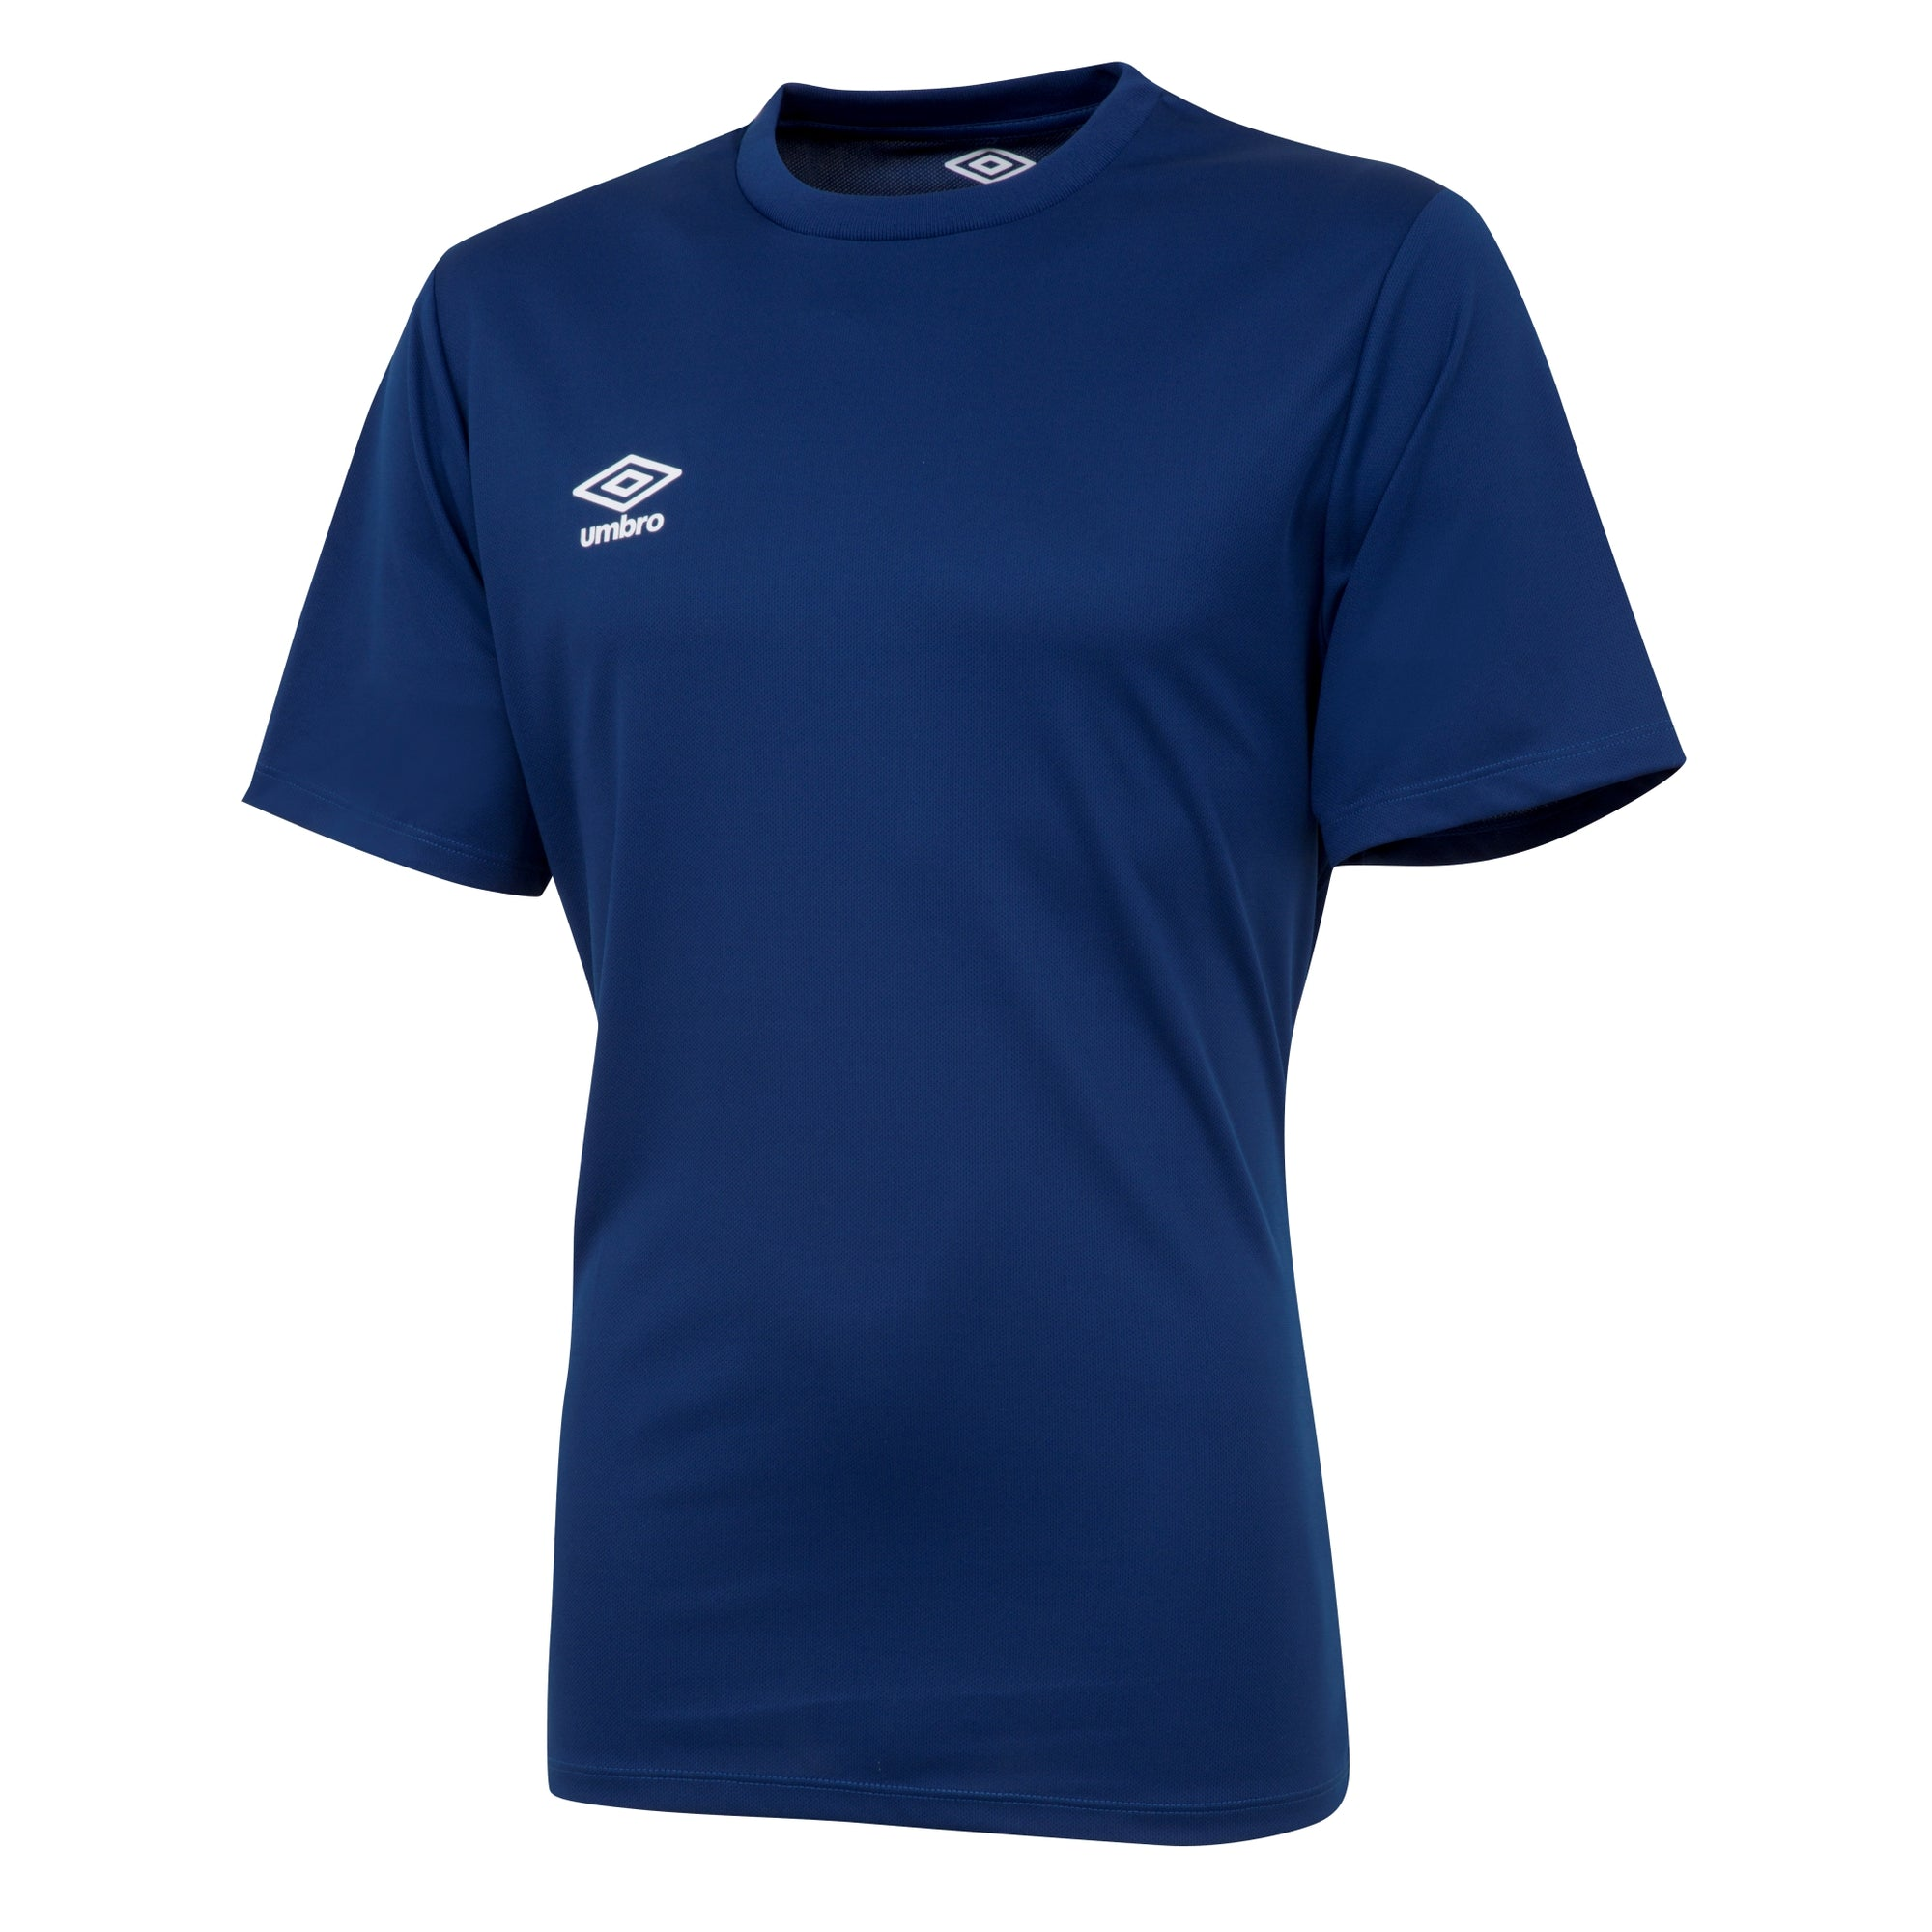 Umbro short sleeve club jersey in navy with white printed Umbro logo